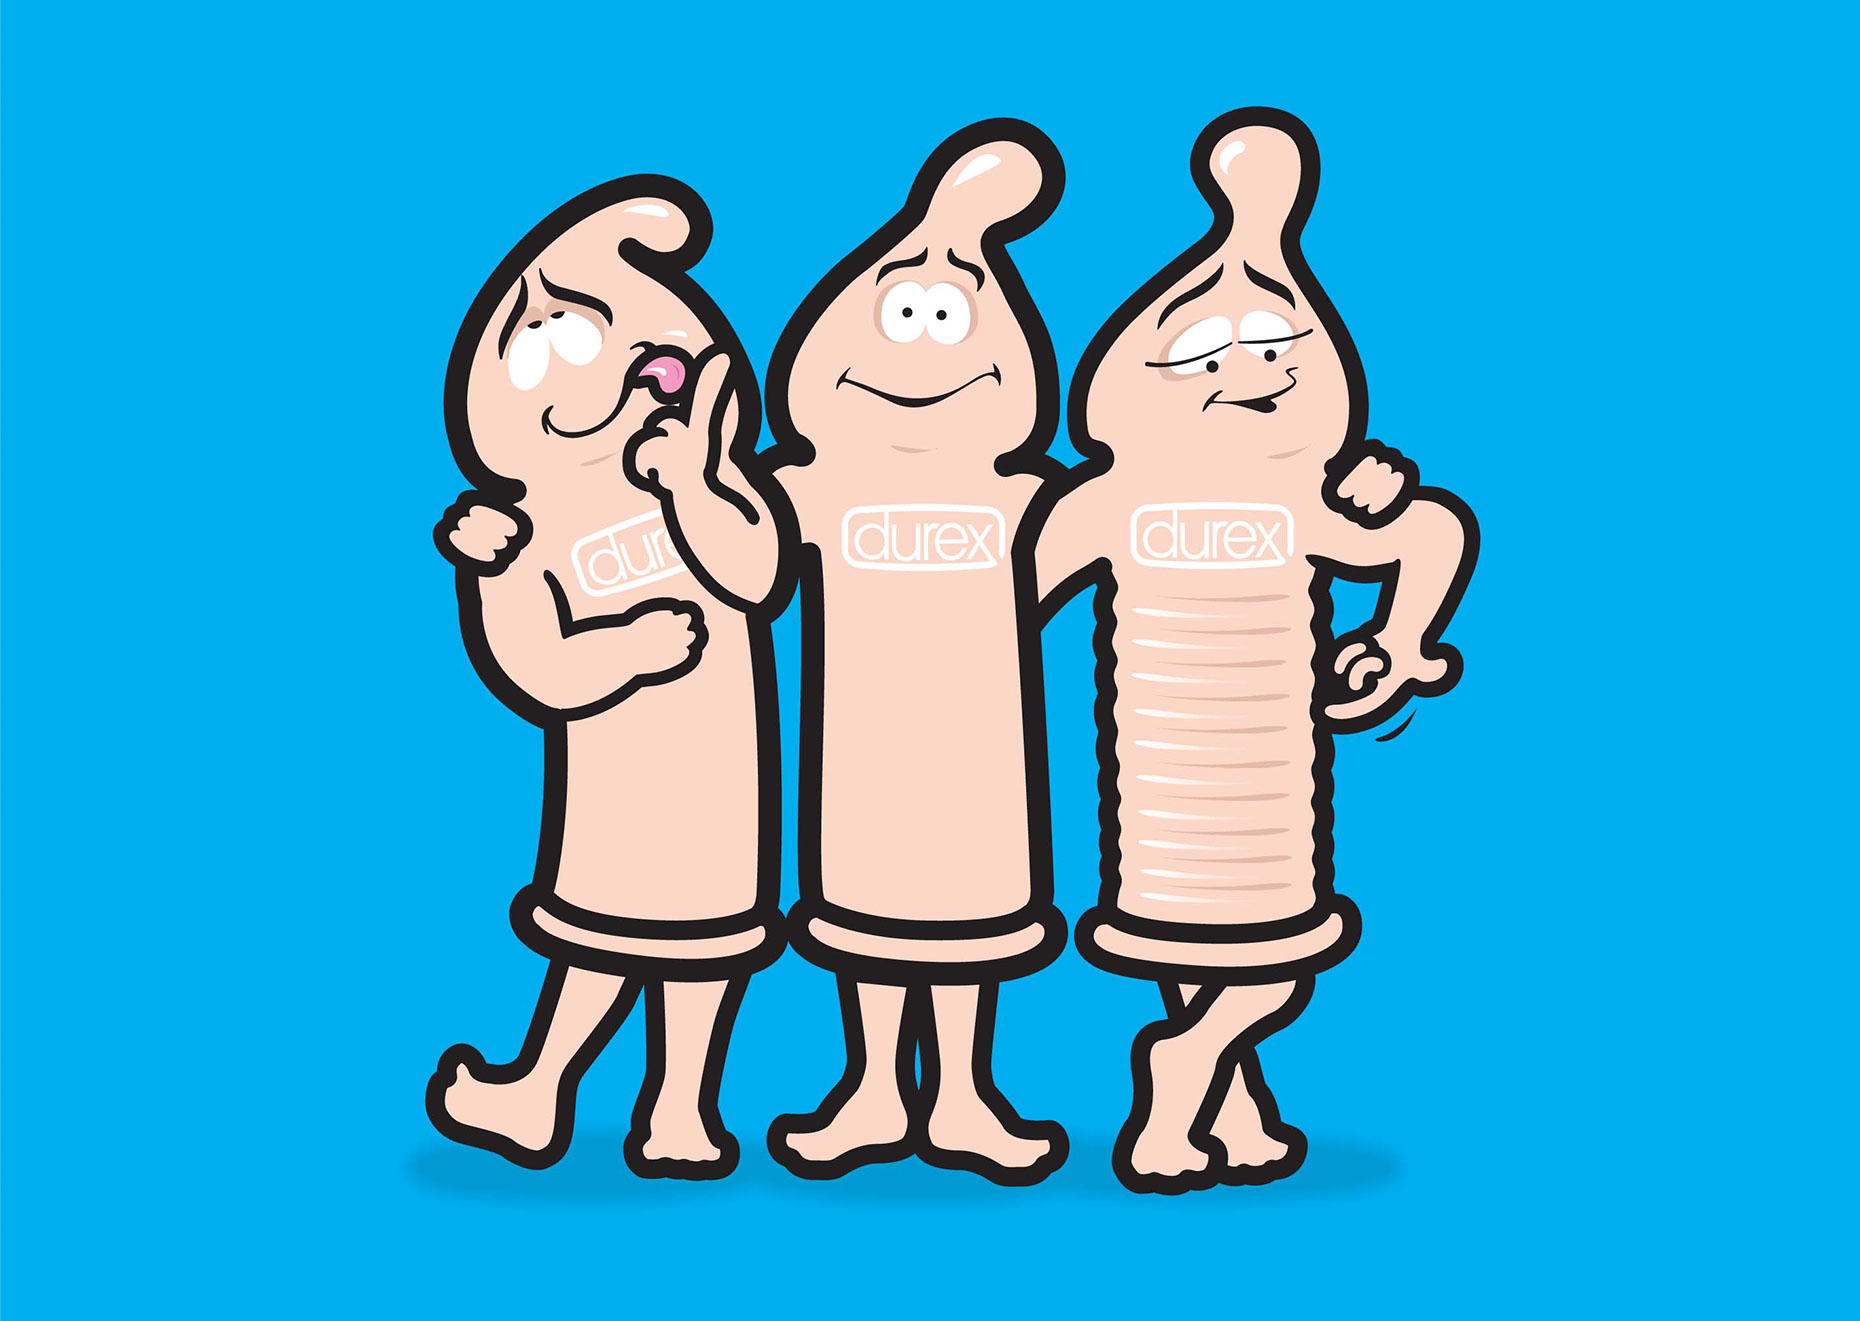 illustration-Cartoons and Characters_Durex Condoms-Jon Rogers